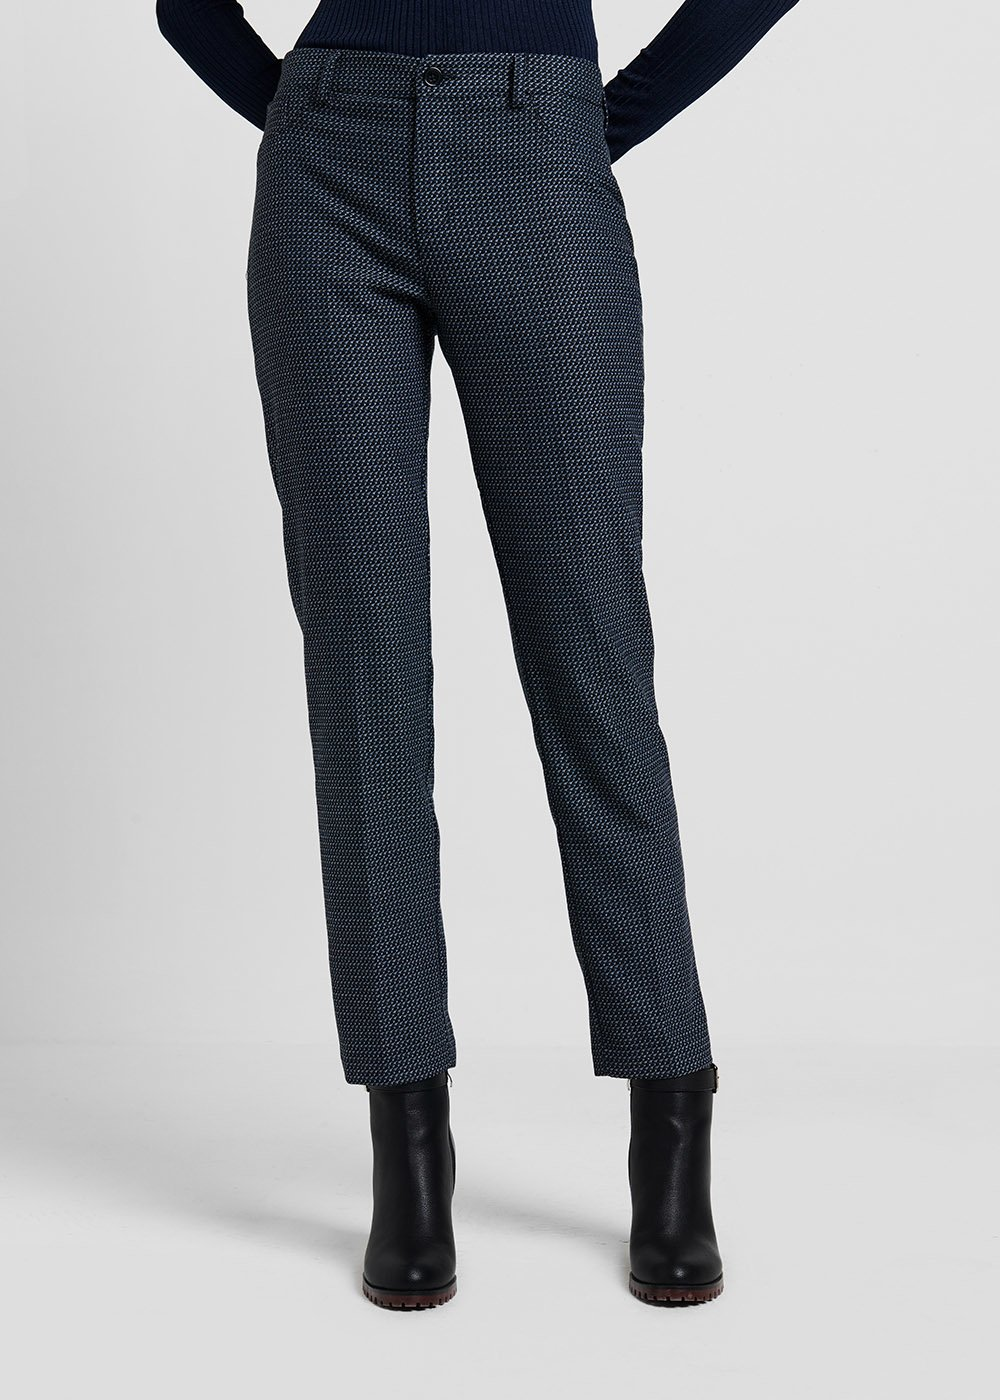 Kelly D trousers in jacquard fabric